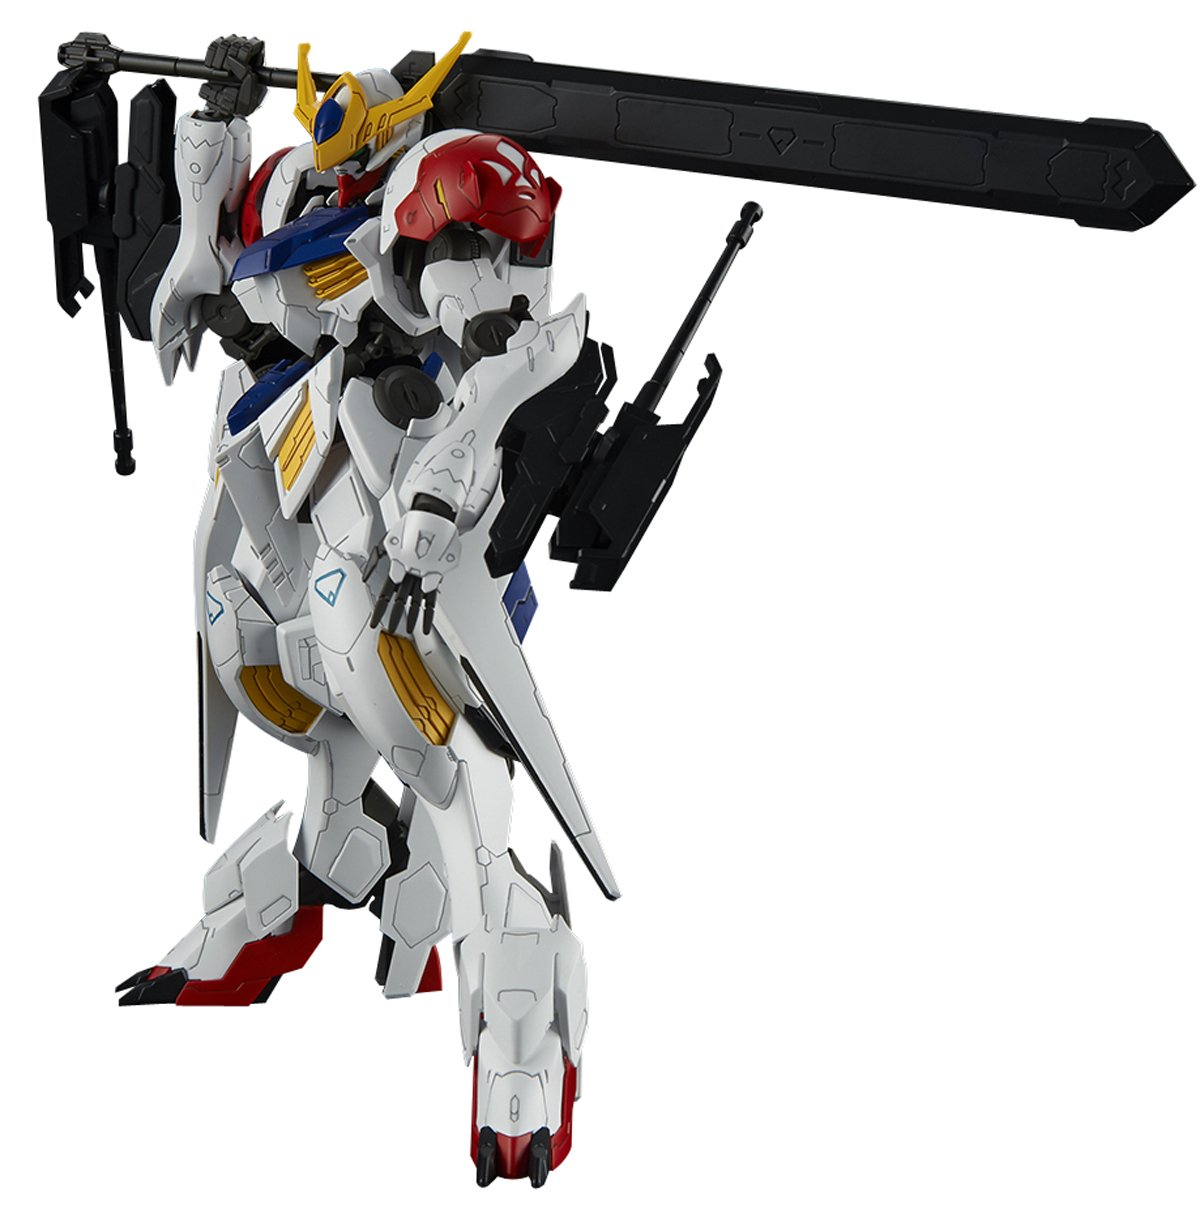 Bandai Hobby Full Mechanics 1/100 IBO Gundam Barbatos Lupus Gundam IBO: Season 2 Building Kit